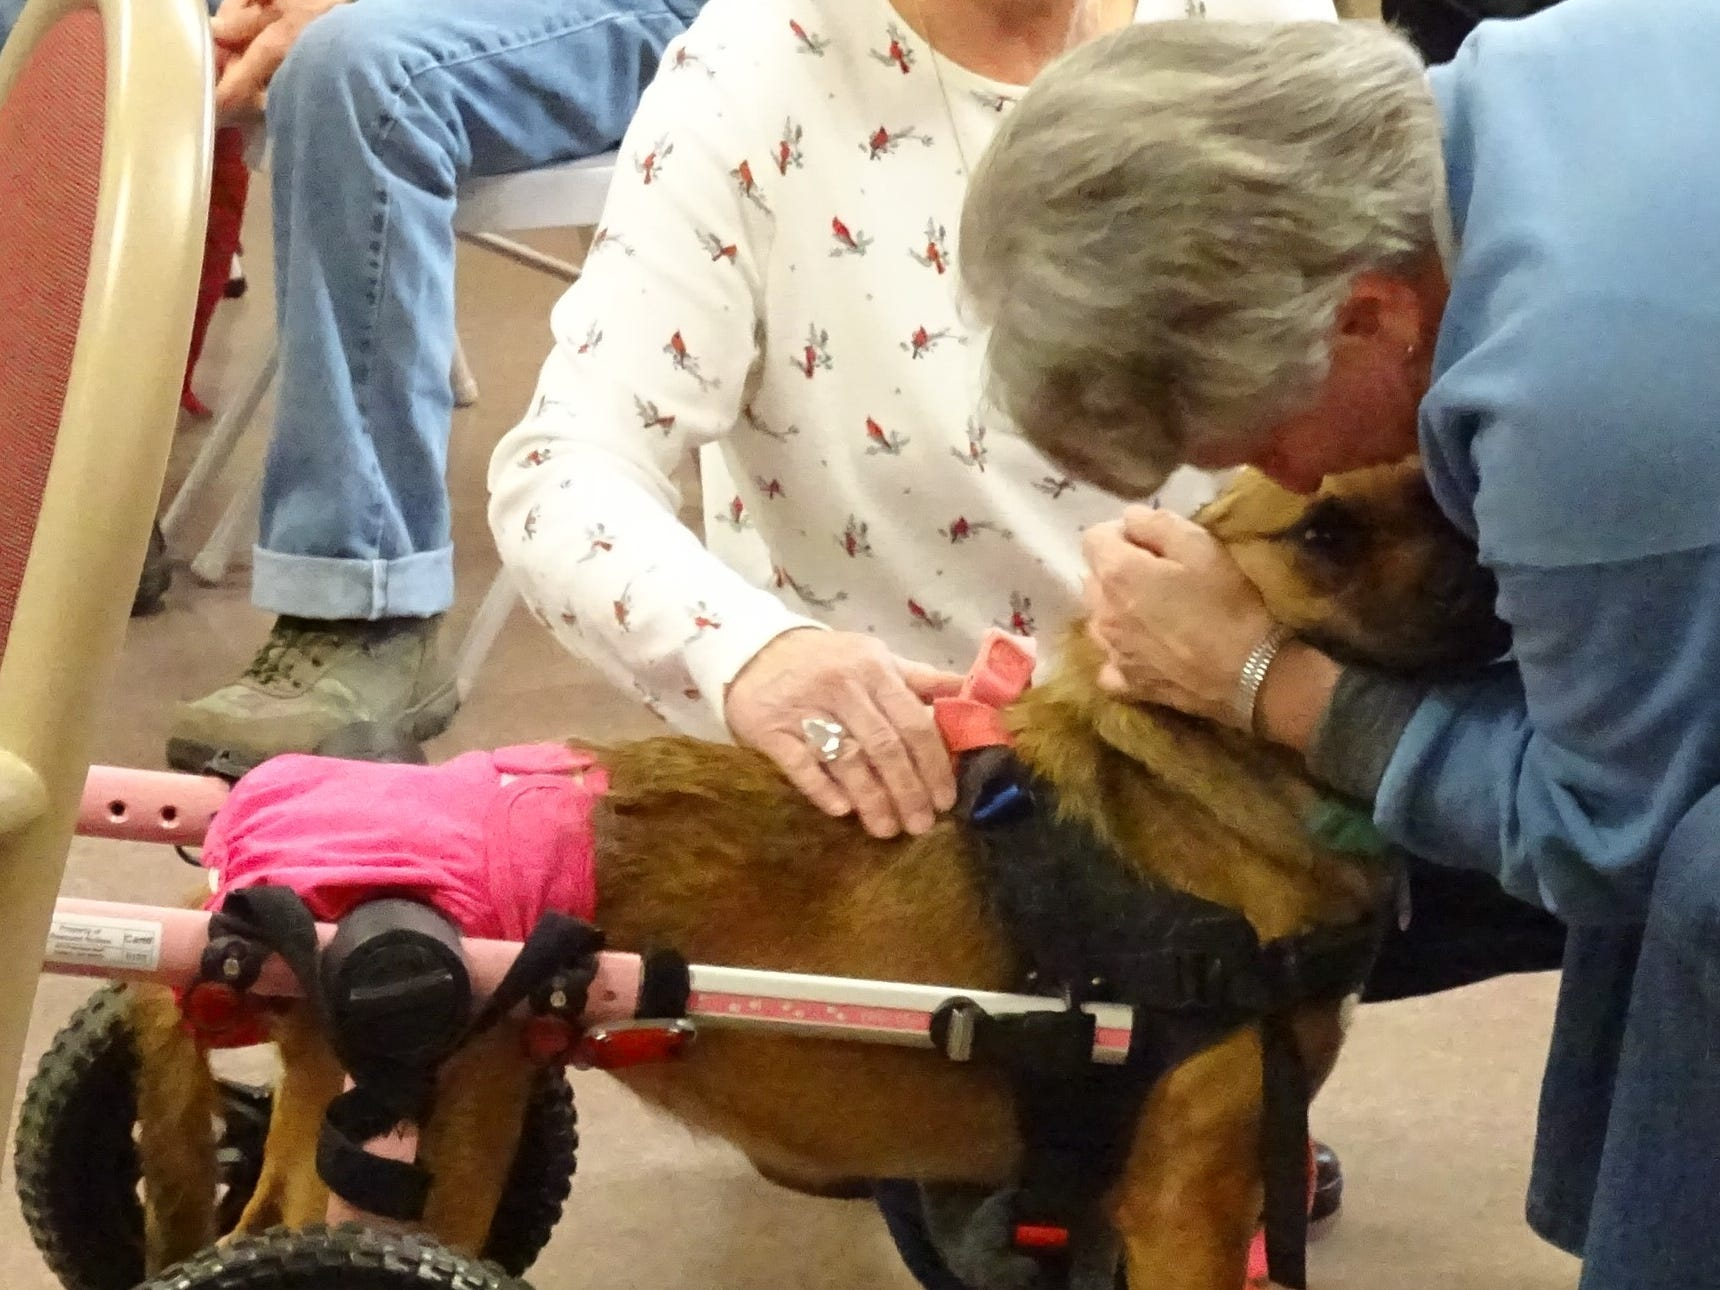 John Lizotte of Rescued Rollers - Wheelchairs for Dogs and his dog, Laura, gave a presentation about the non-profit and how to care for dogs with disabilities at the Crawford County Council on Aging on Friday.